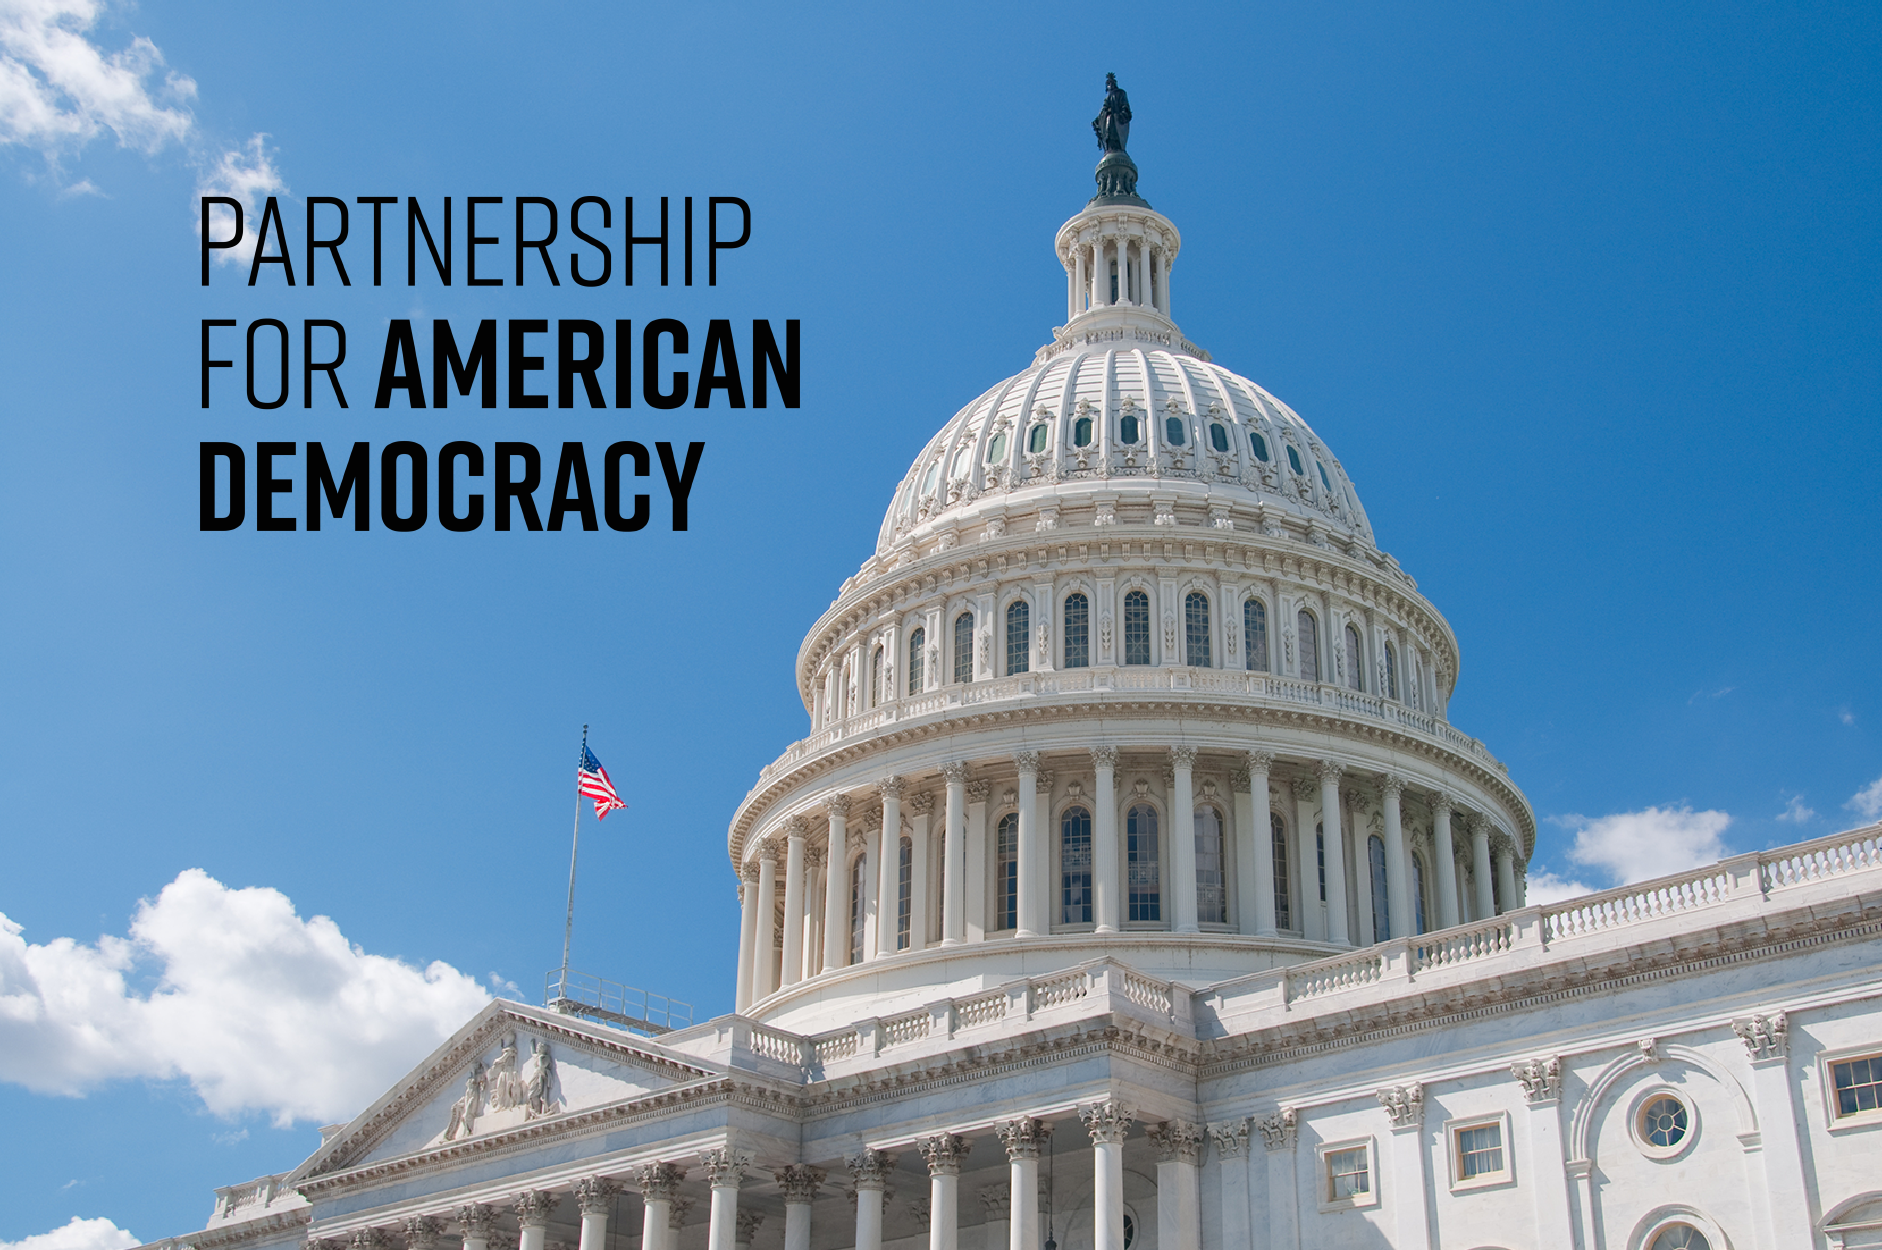 CCCU President Joins Partnership for American Democracy's National Leadership Council